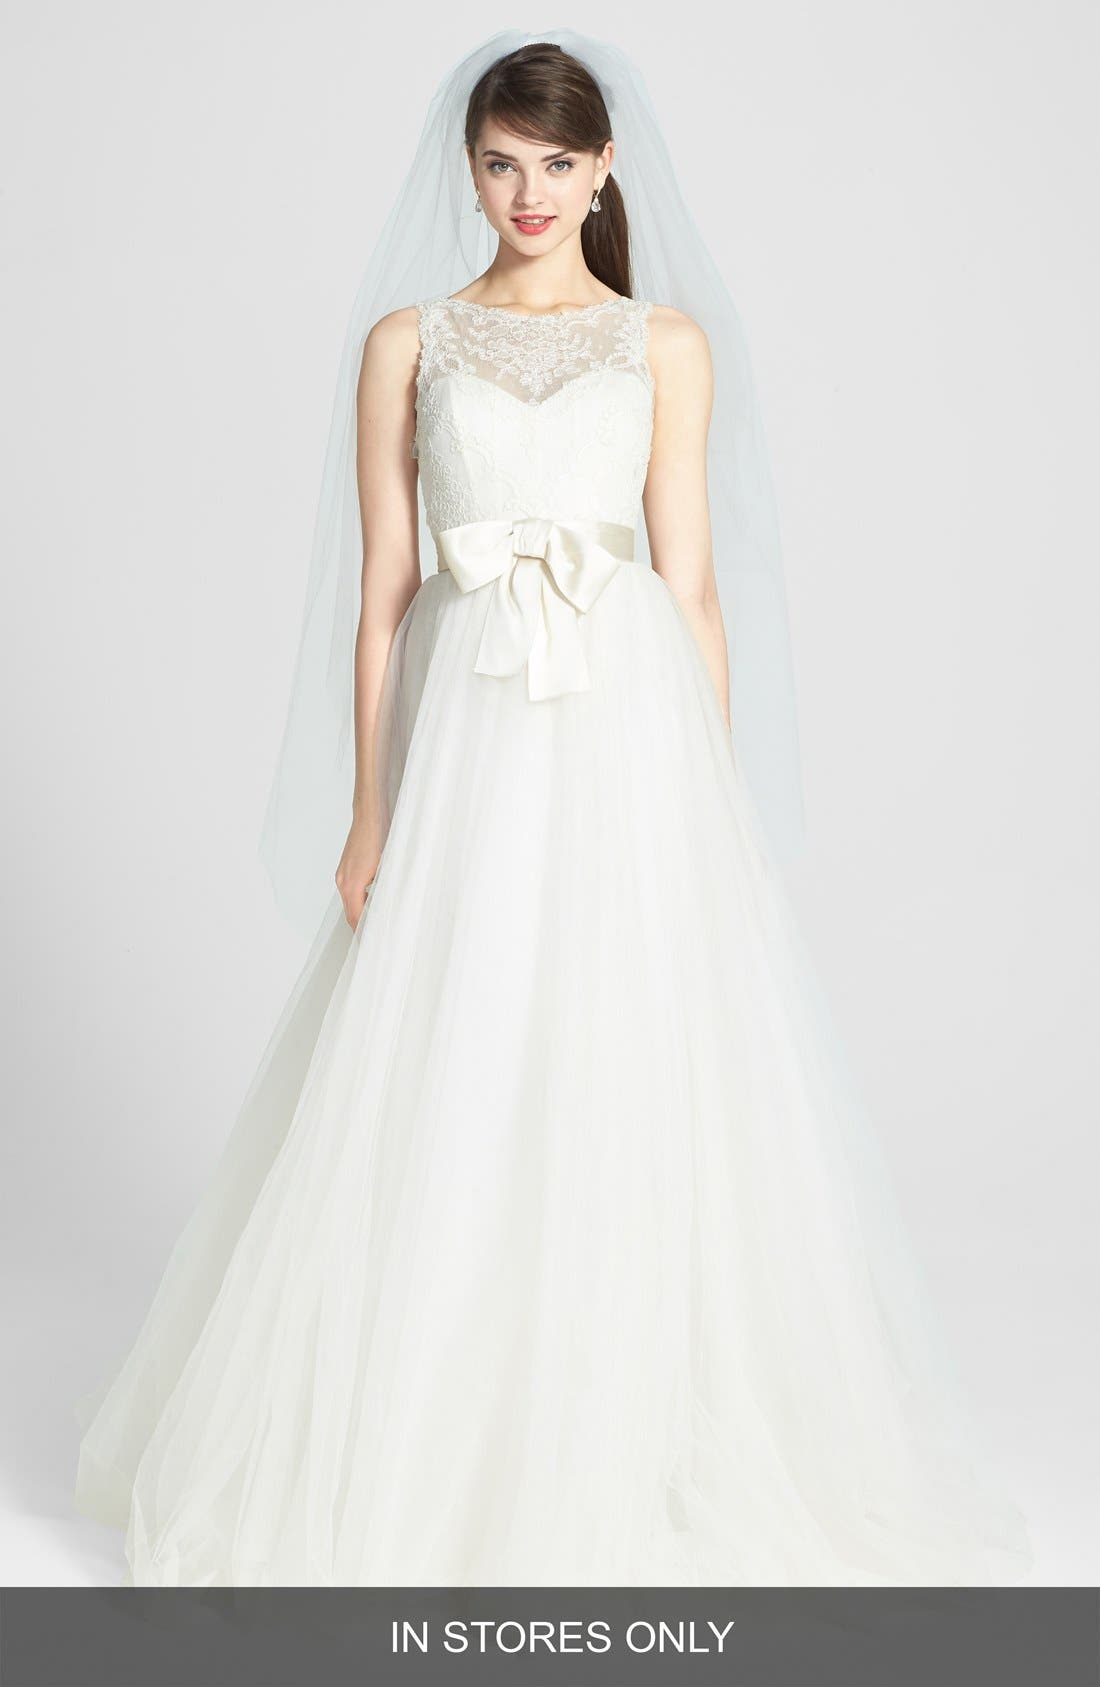 AMSALE Quinn French Lace Illusion Bodice Tulle Wedding Dress, Main, color, 900